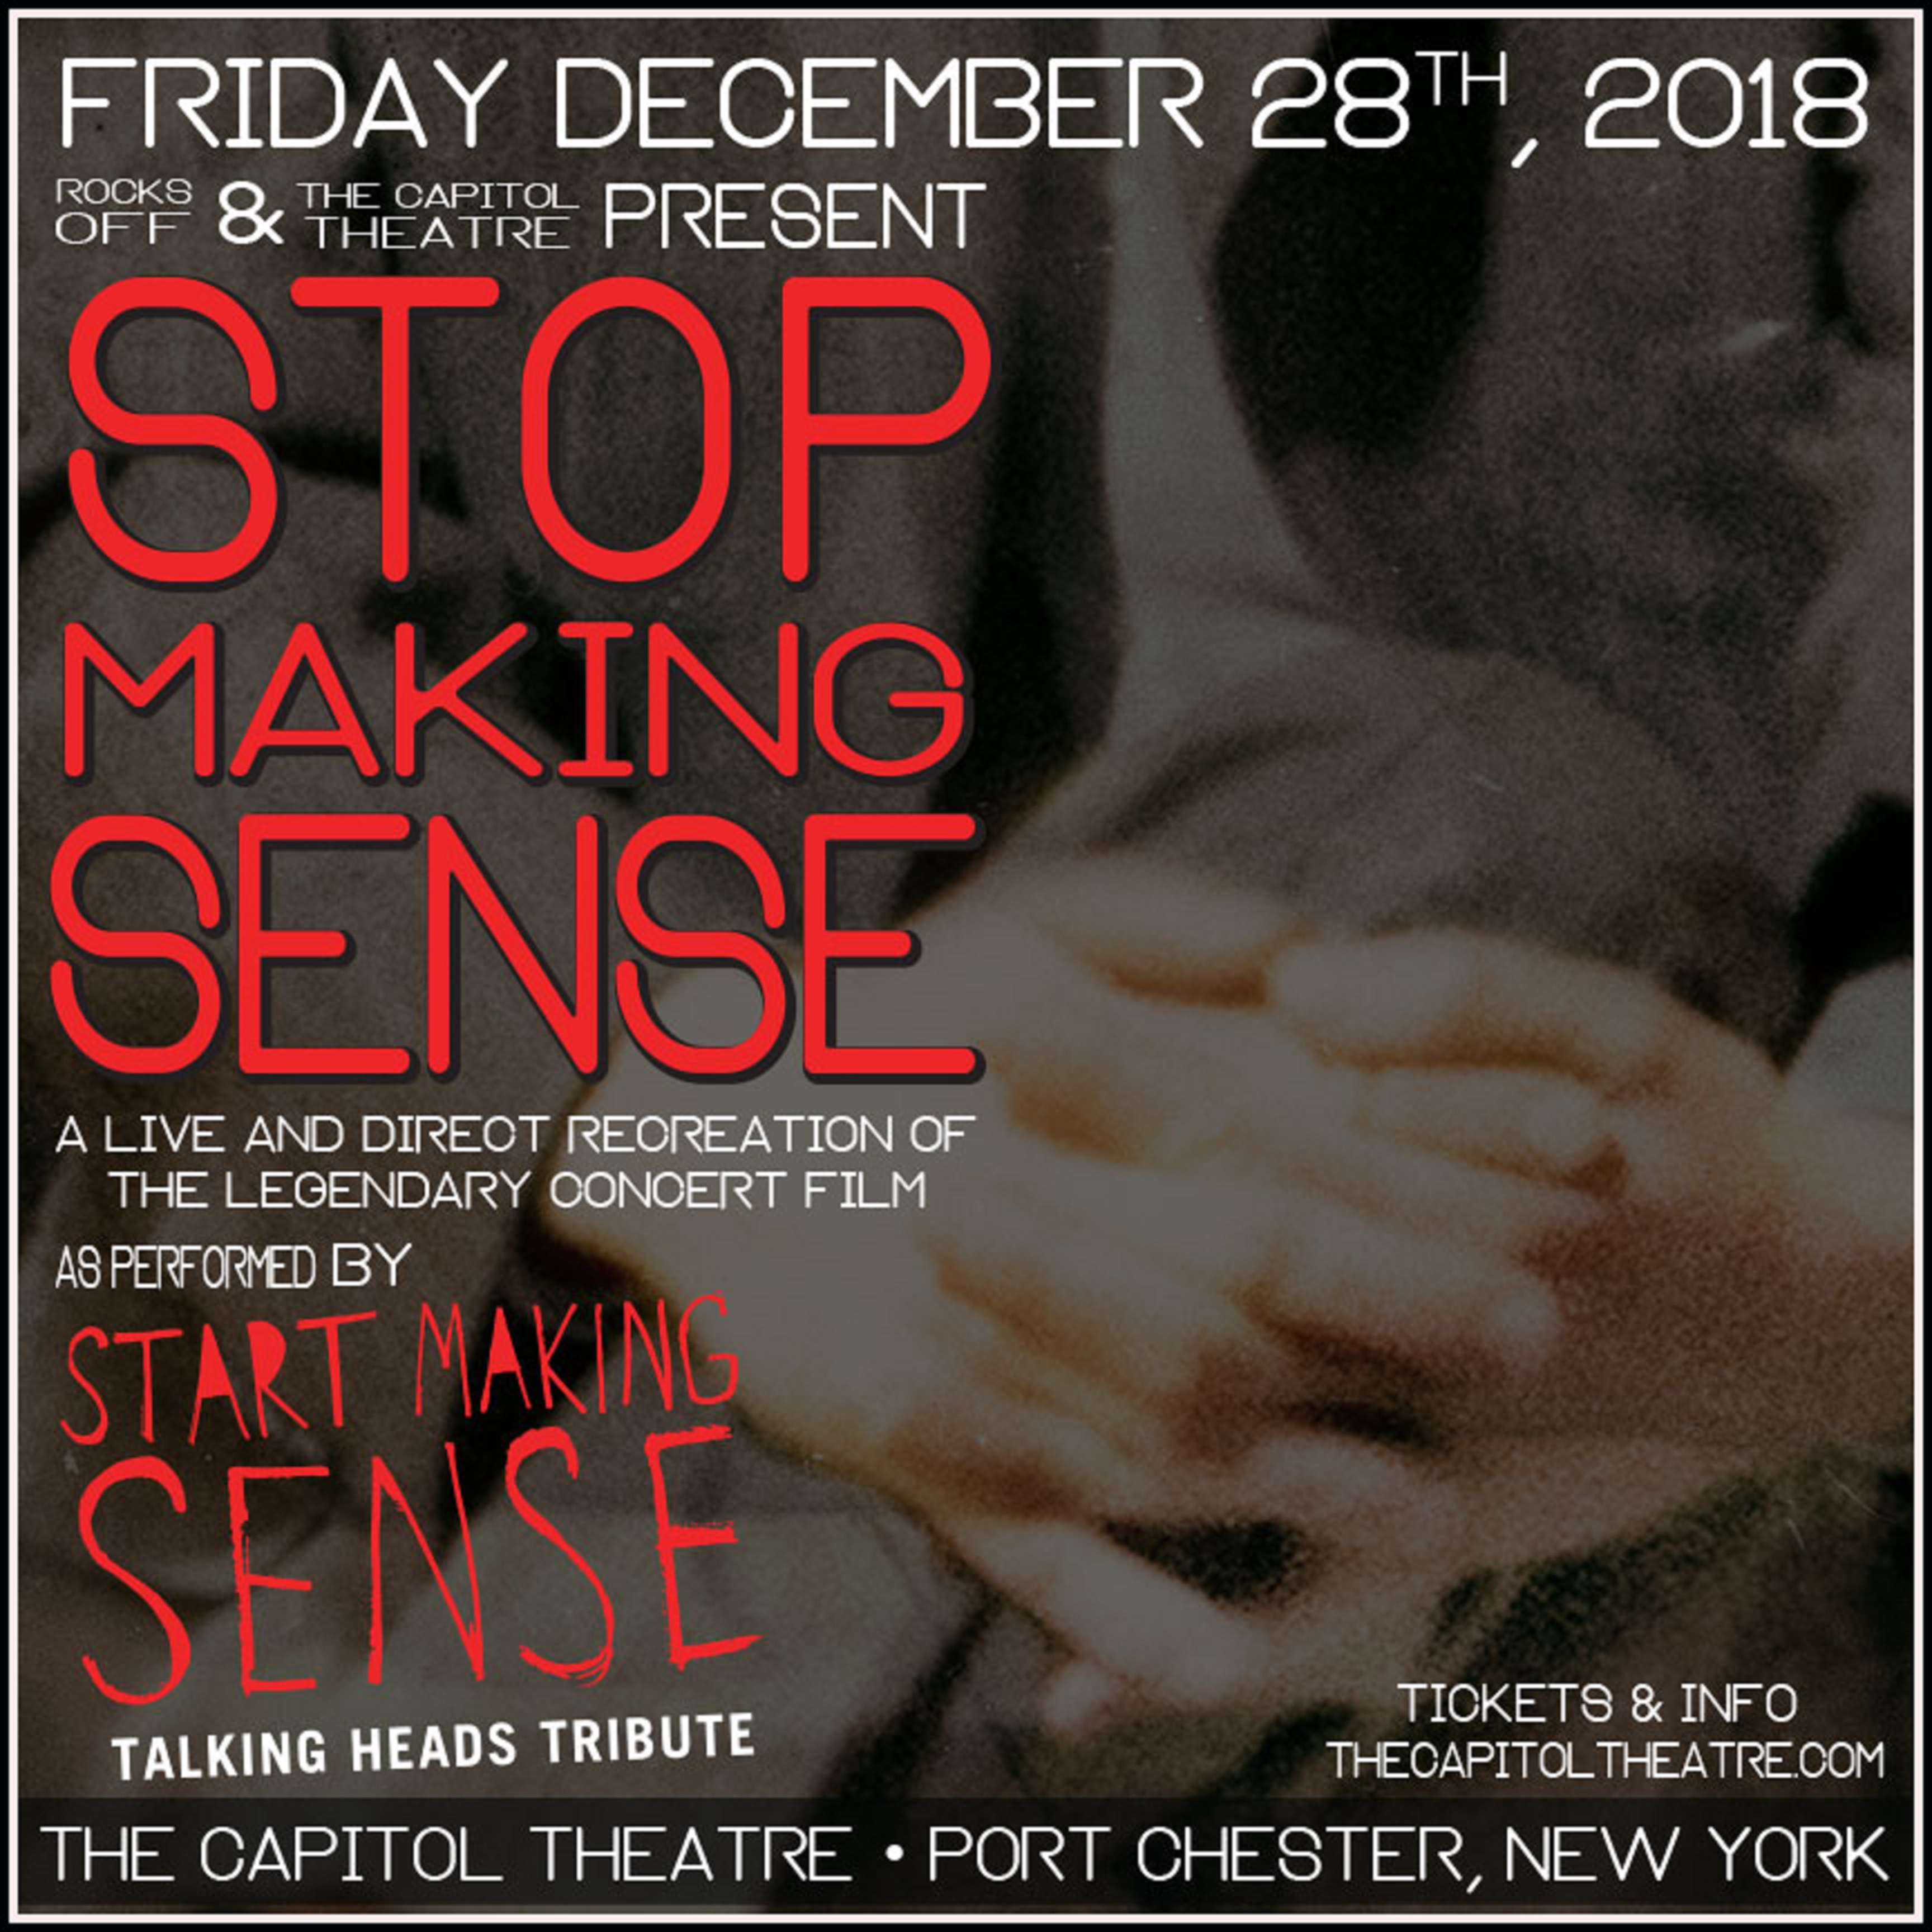 Stop Making Sense Re-Creation at The Cap on Friday, December 28